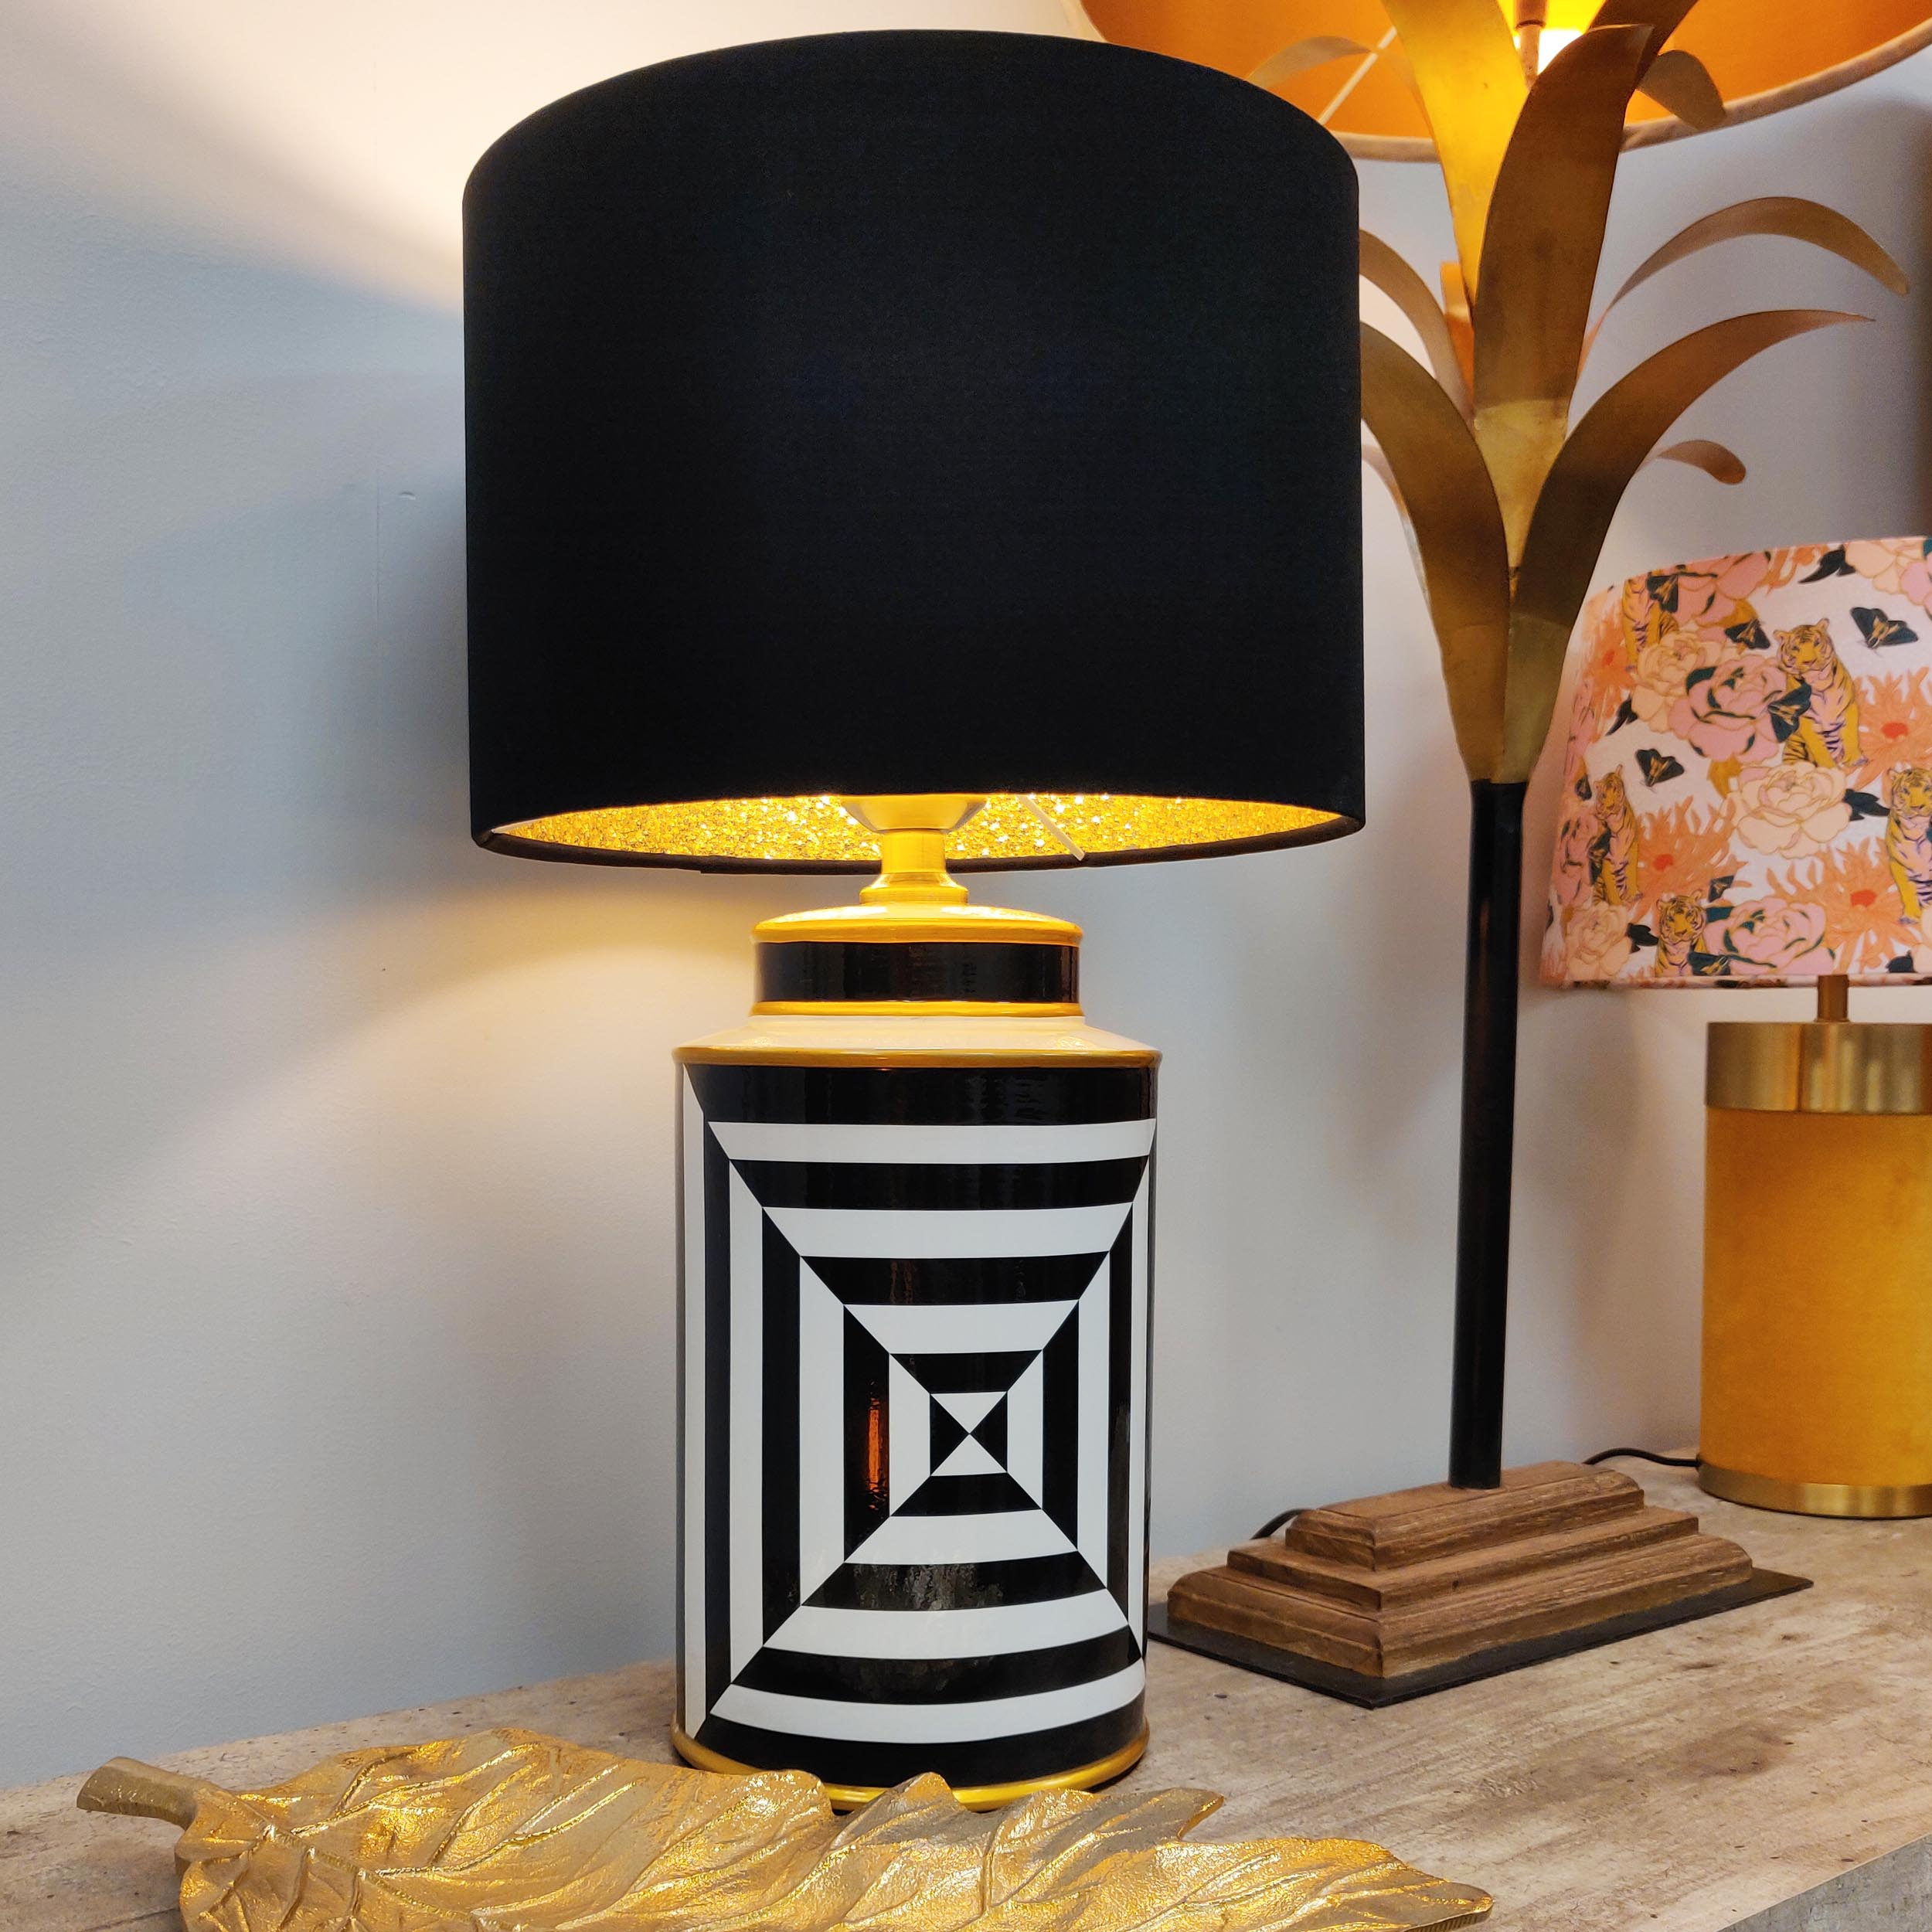 Black and White Geometric Table Lamp